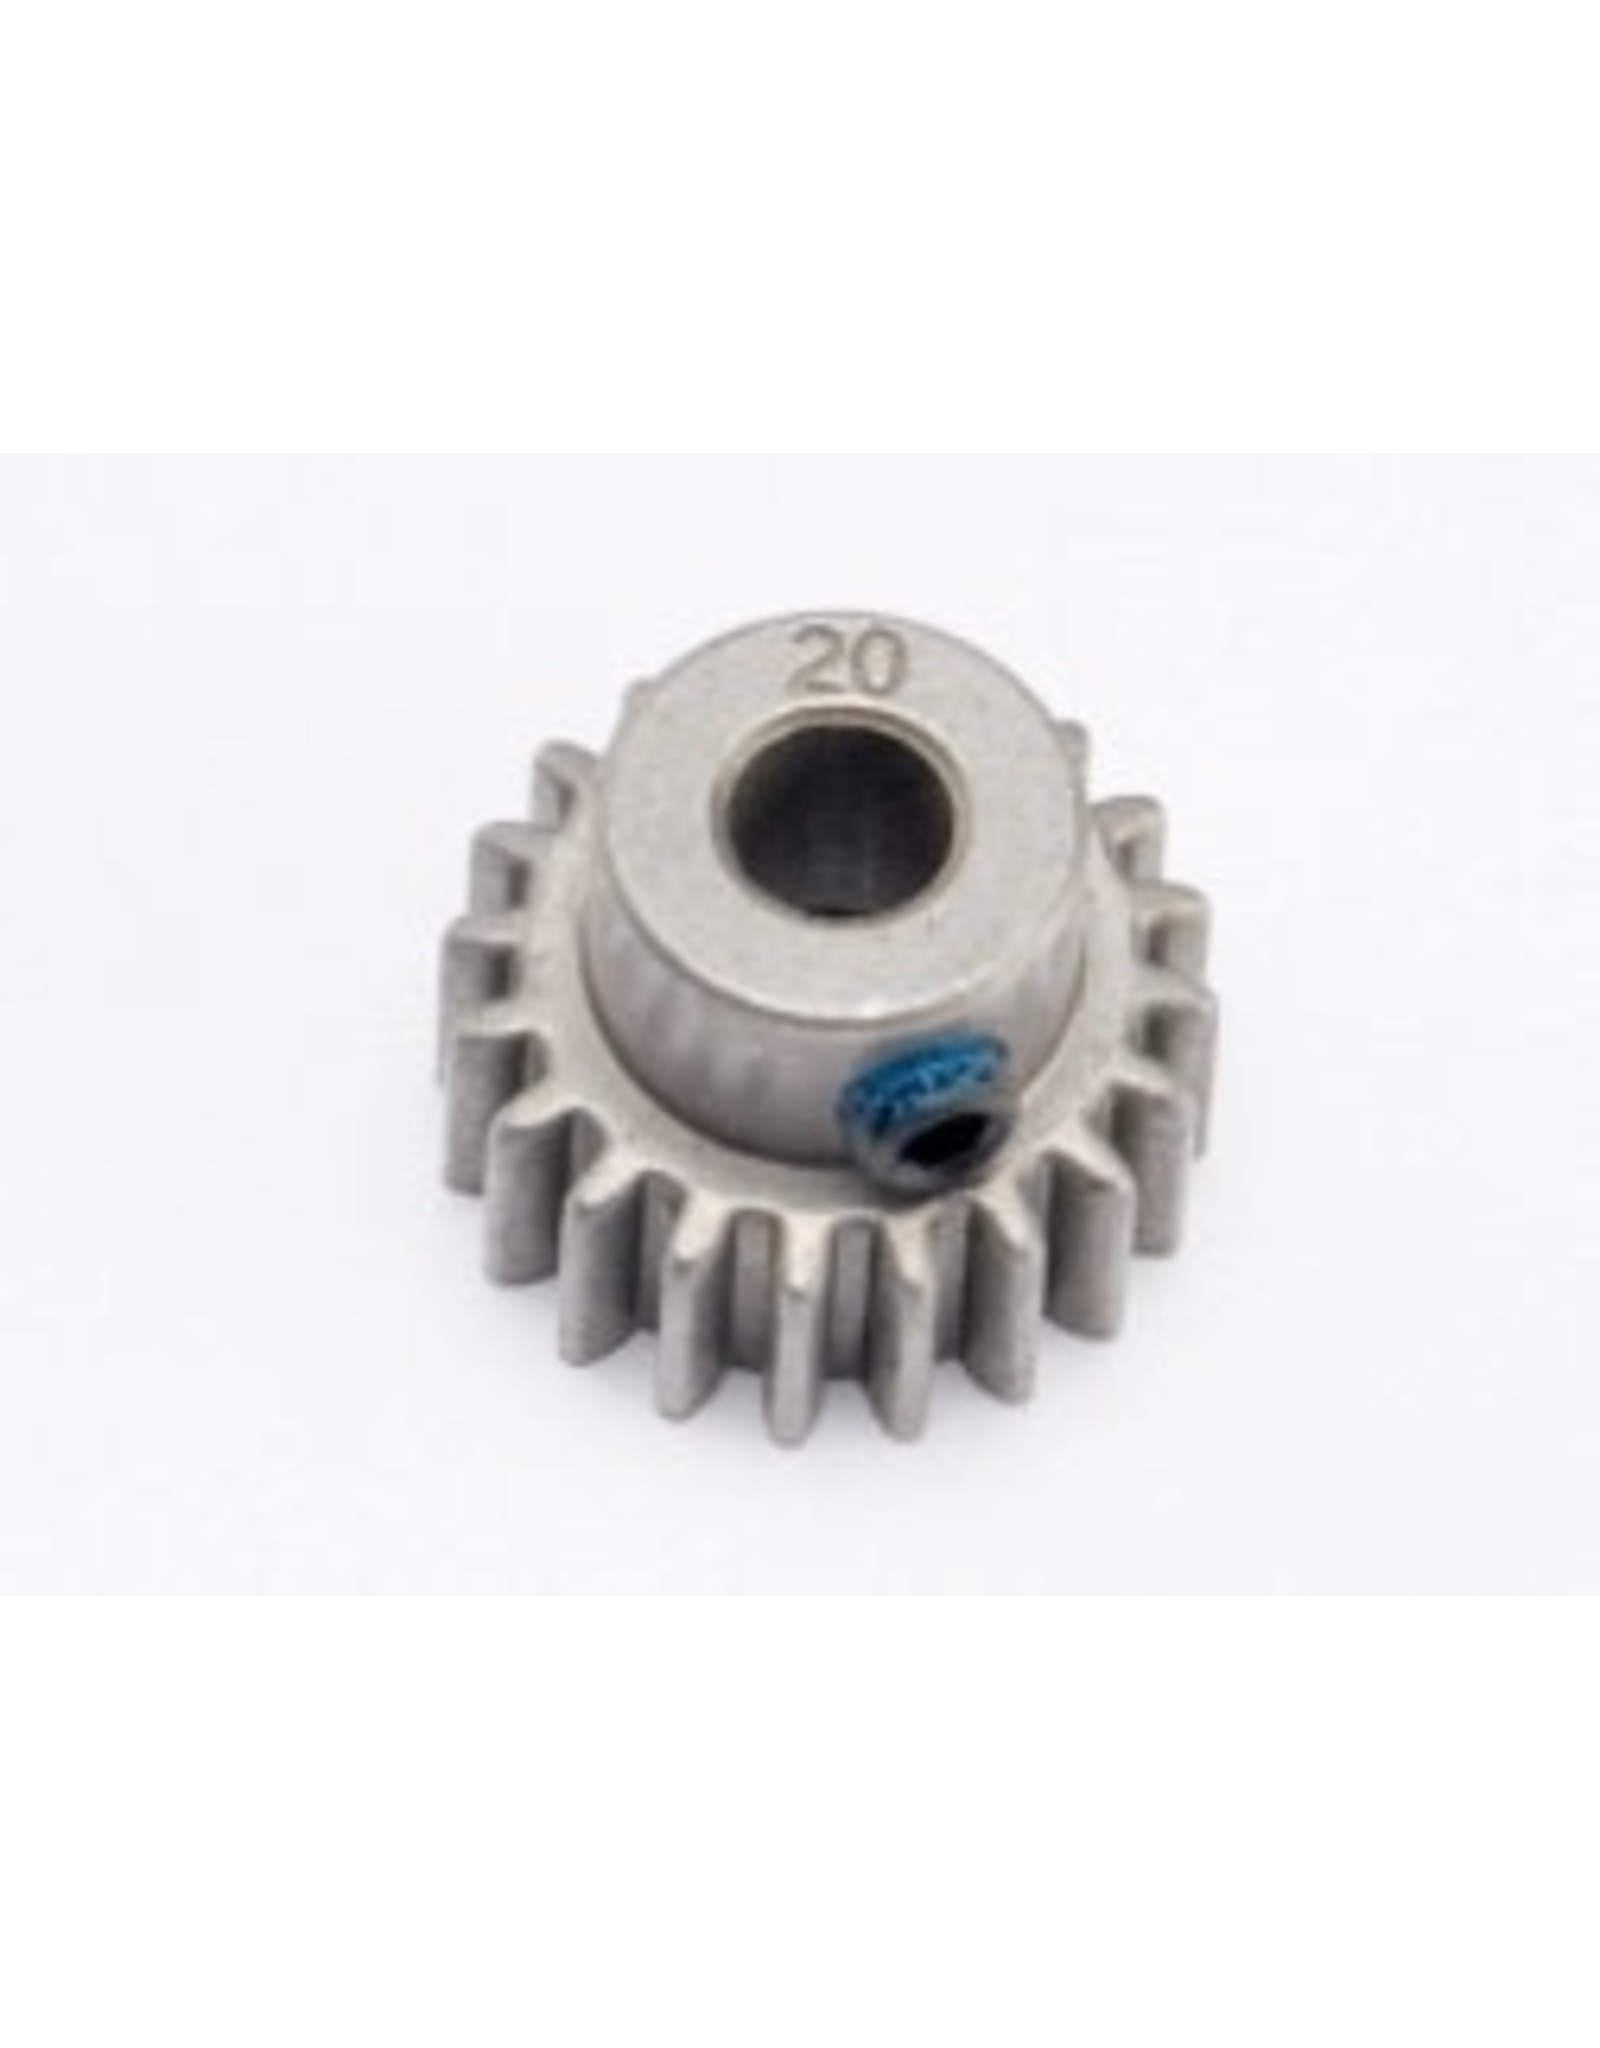 Traxxas Pinion 20 tooth 32-P 5mm Shaft 5646